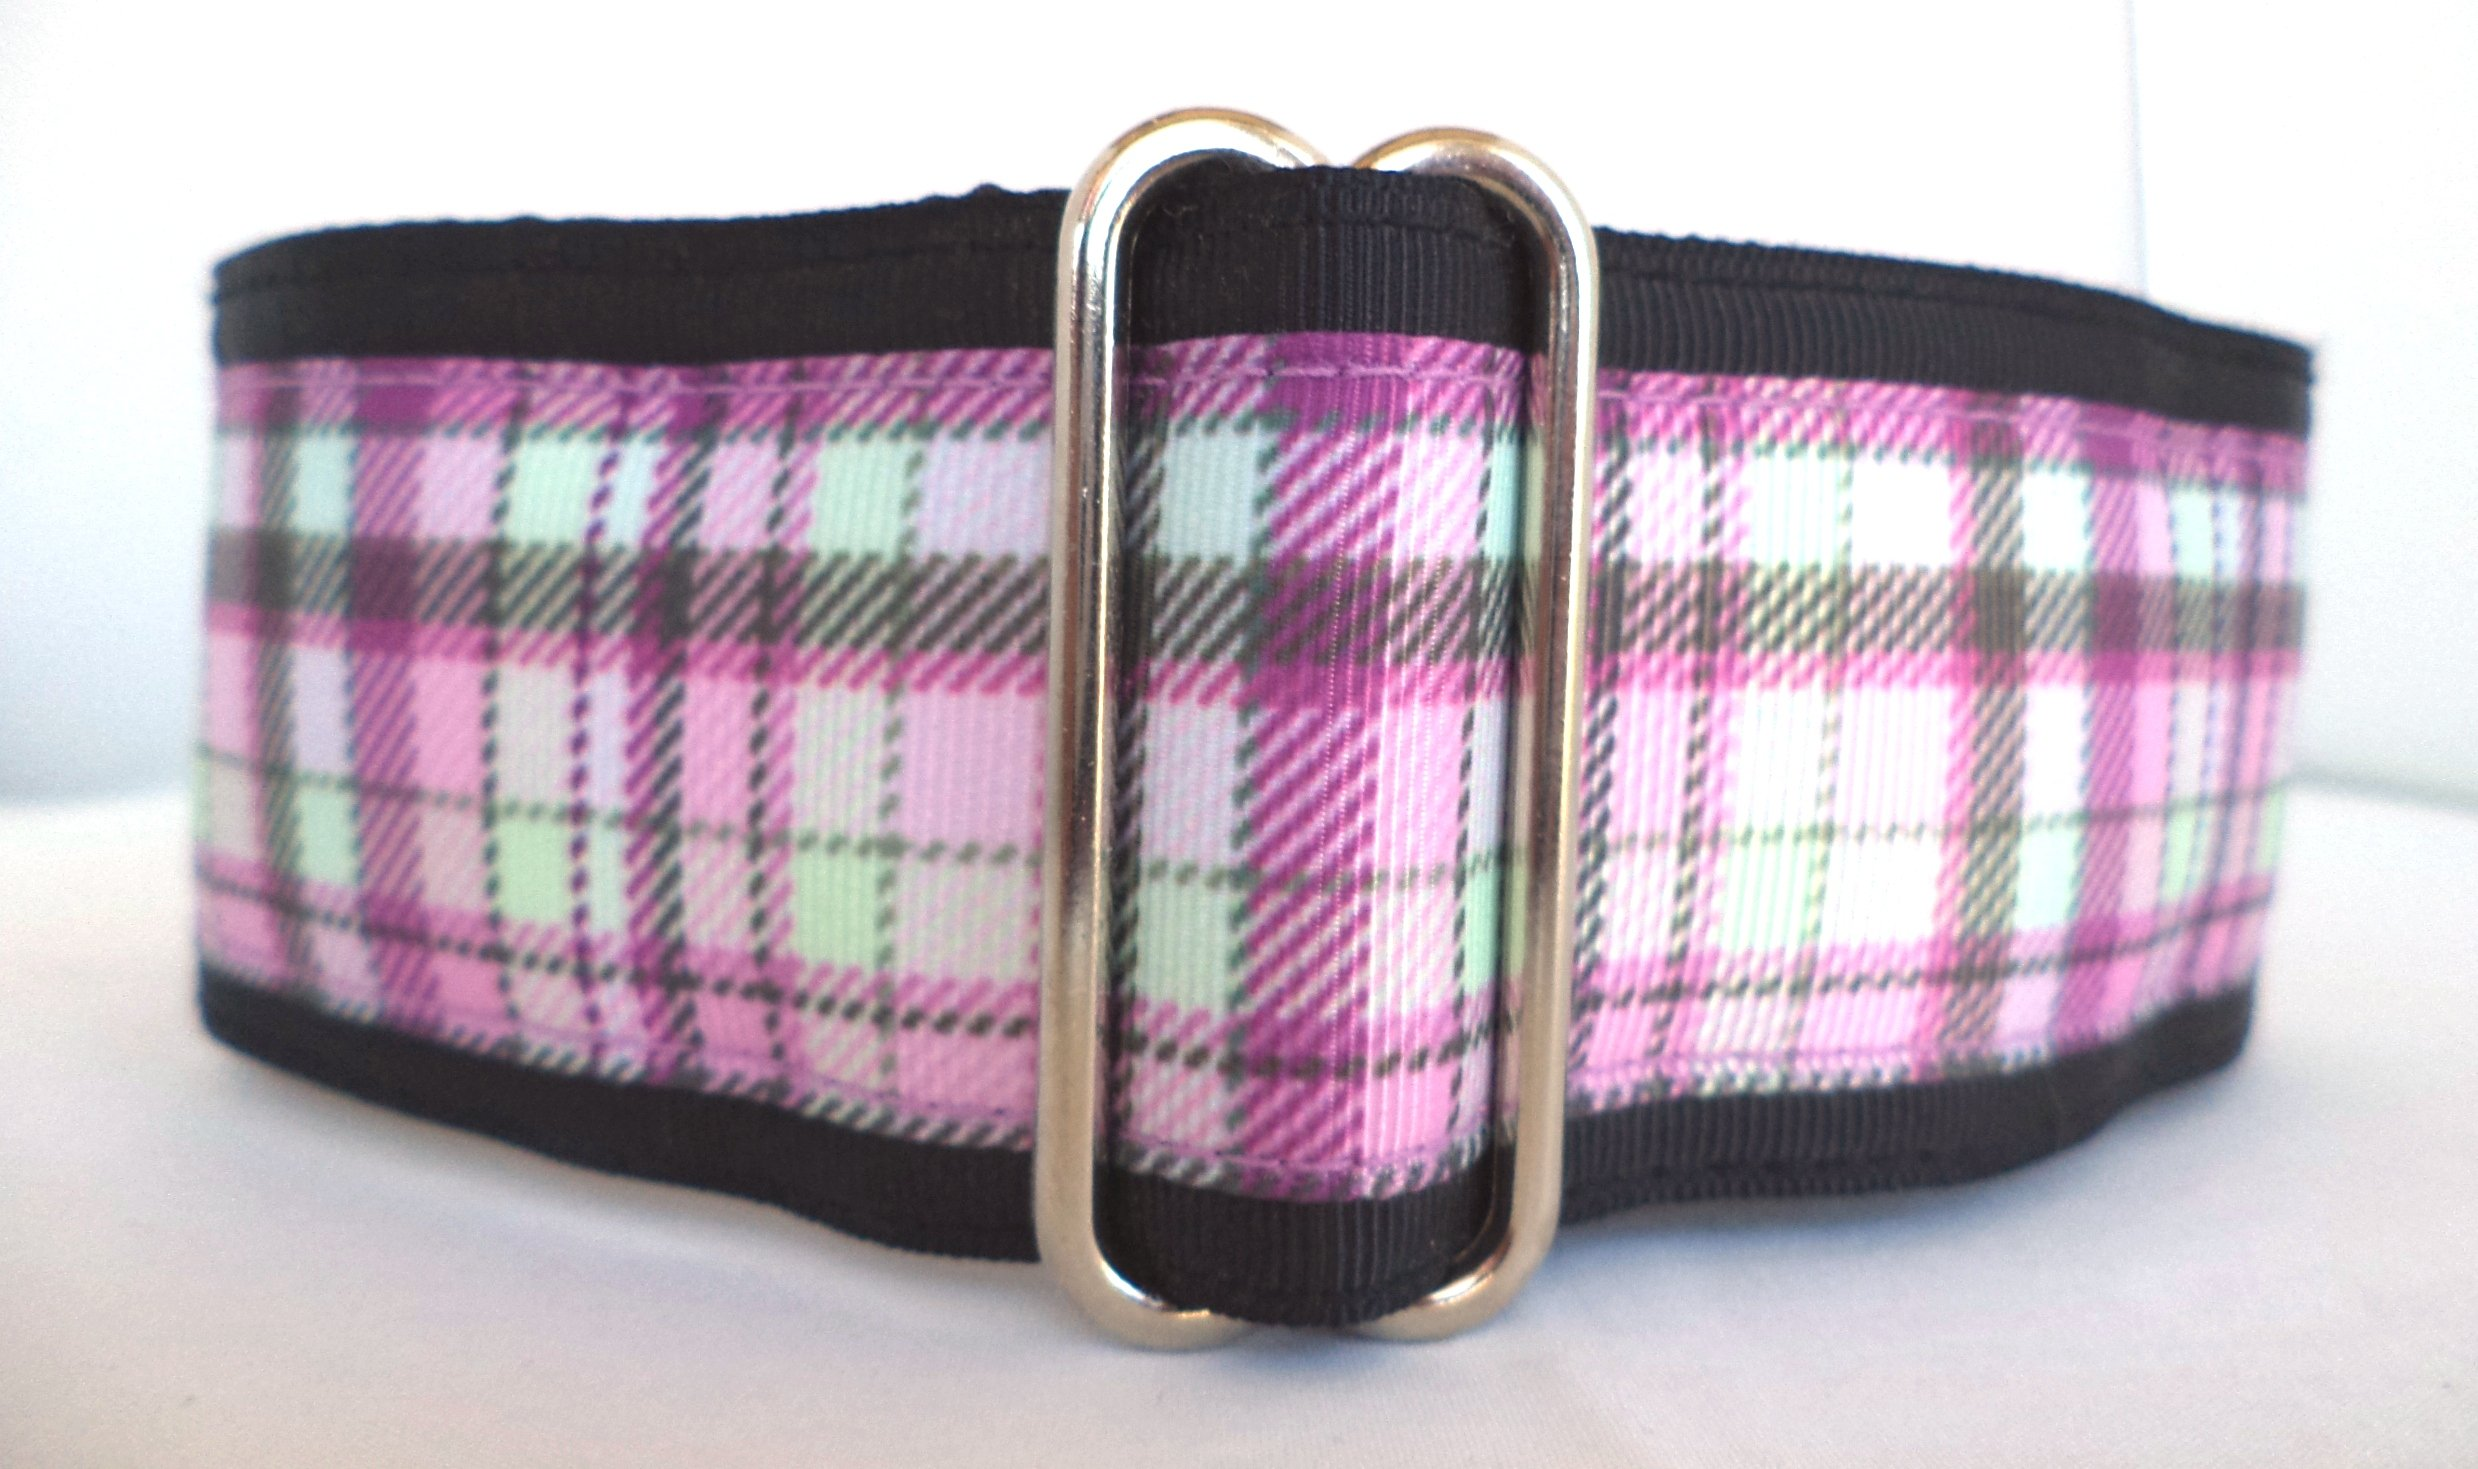 Regal Hound Designs 2'' Wide Martingale Dog Collar, Lined, 2 Sizes: Medium, Large/XL, Purple and Grey Plaid Design (Large/XL 17-26'') by Regal Hound Designs